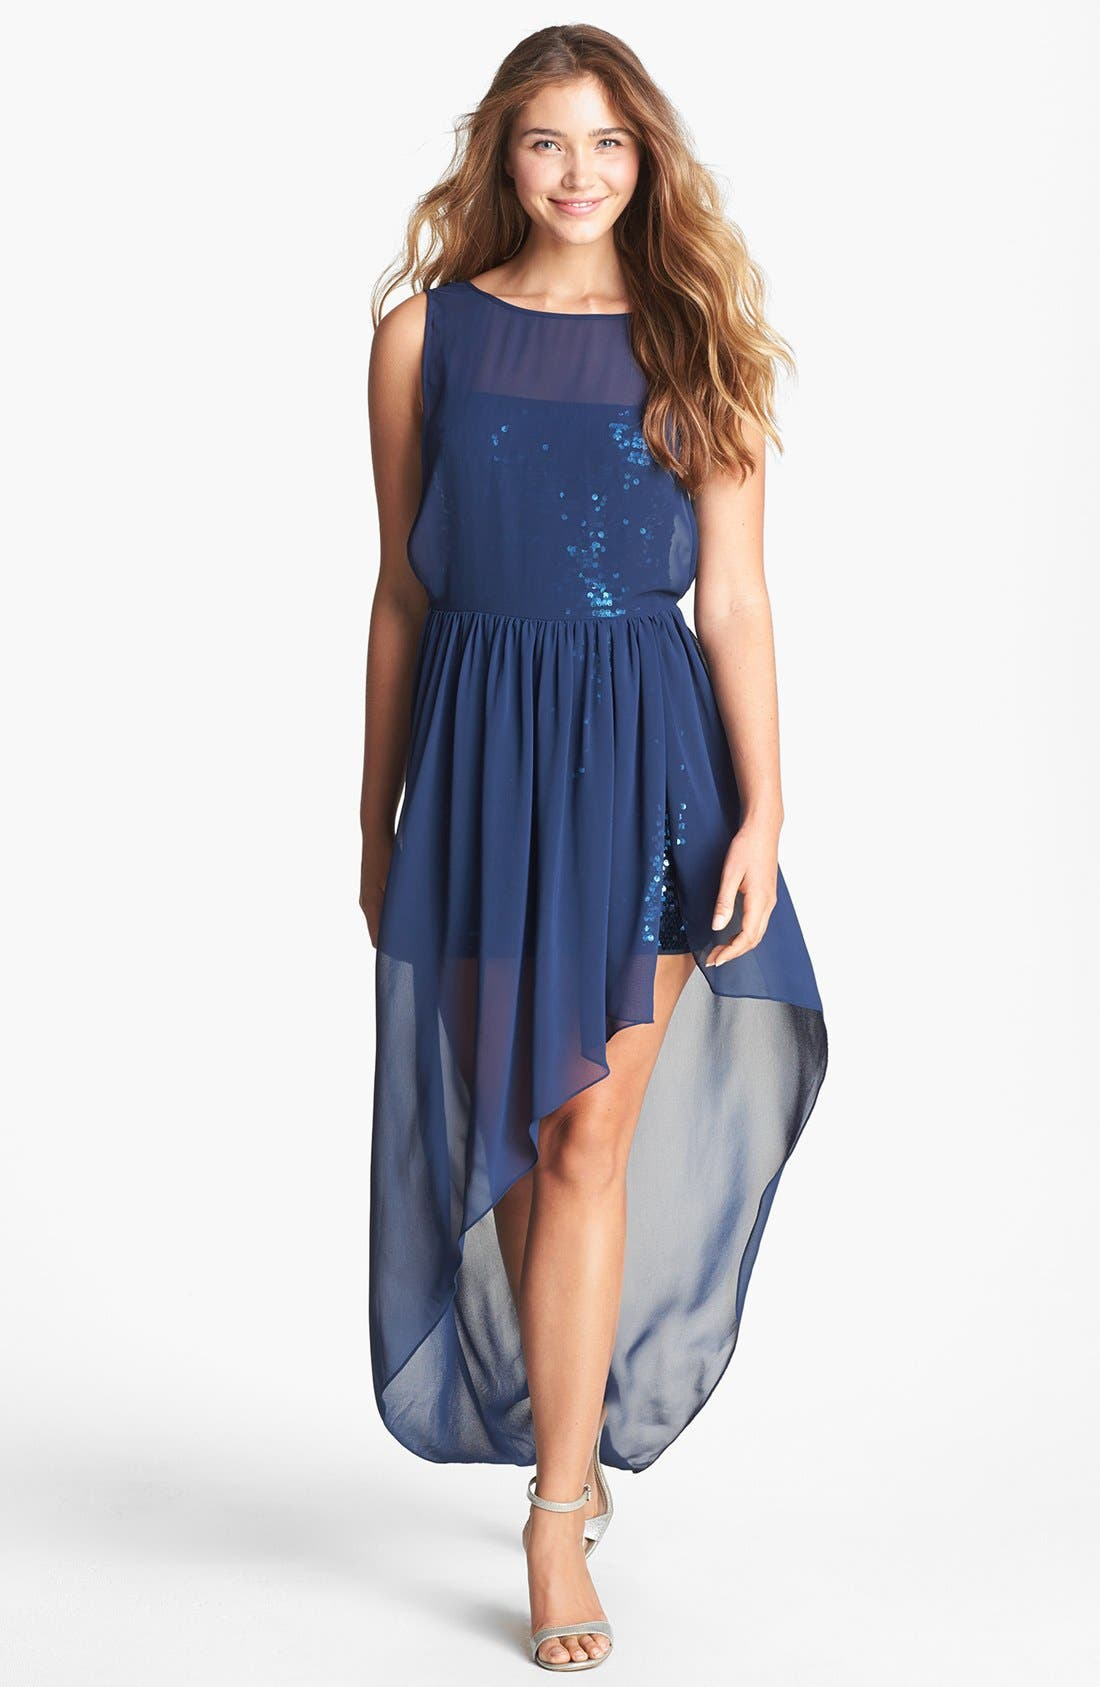 Alternate Image 1 Selected - BCBGMAXAZRIA Sequin & Sheer Chiffon High/Low Dress